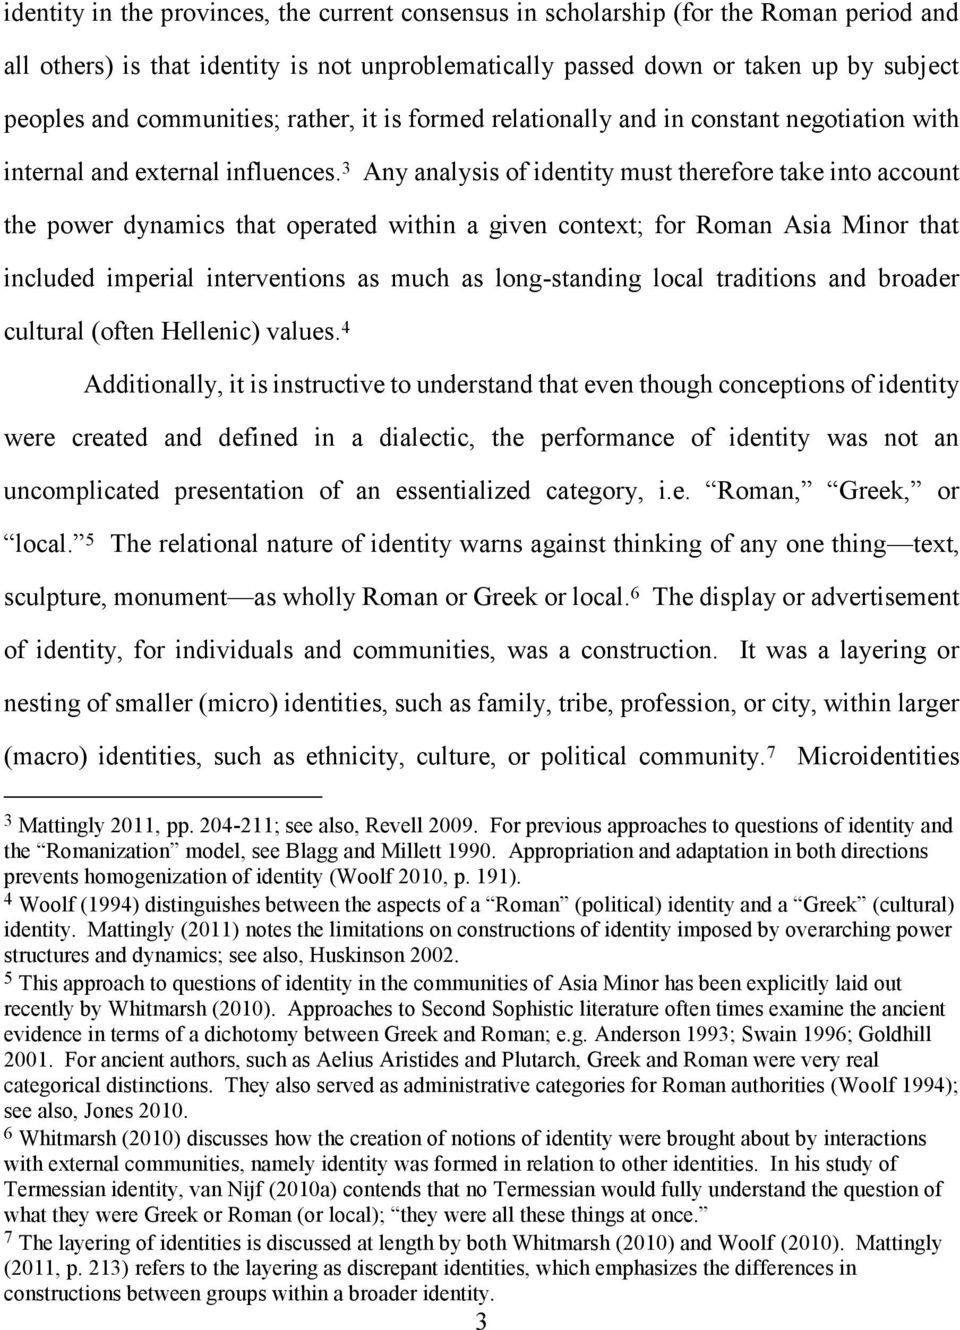 3 Any analysis of identity must therefore take into account the power dynamics that operated within a given context; for Roman Asia Minor that included imperial interventions as much as long-standing